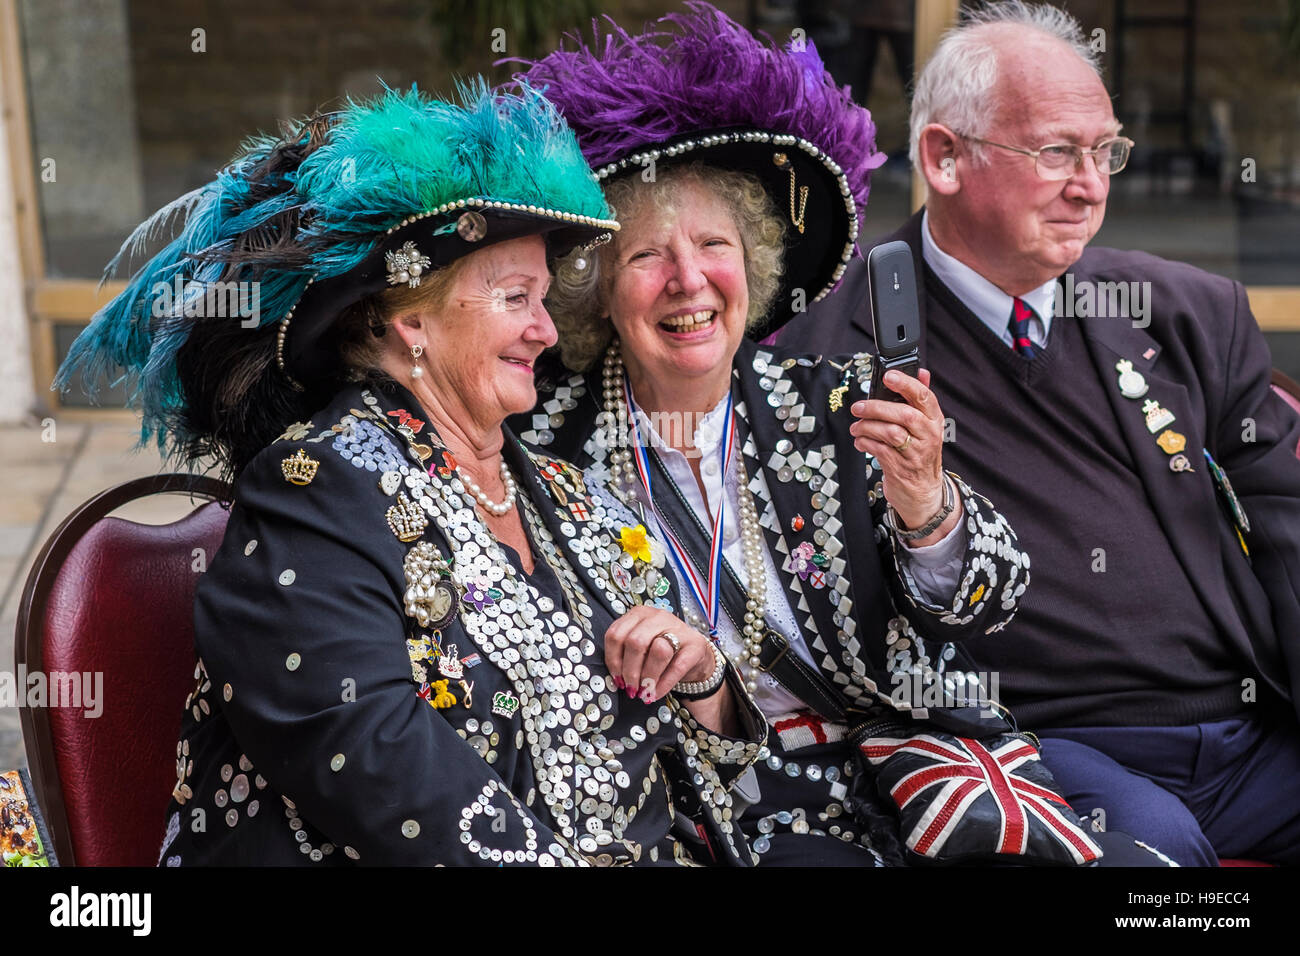 2016 Pearly Kings&Queens Harvest Festival Parade, London, England, U.K. Stock Photo